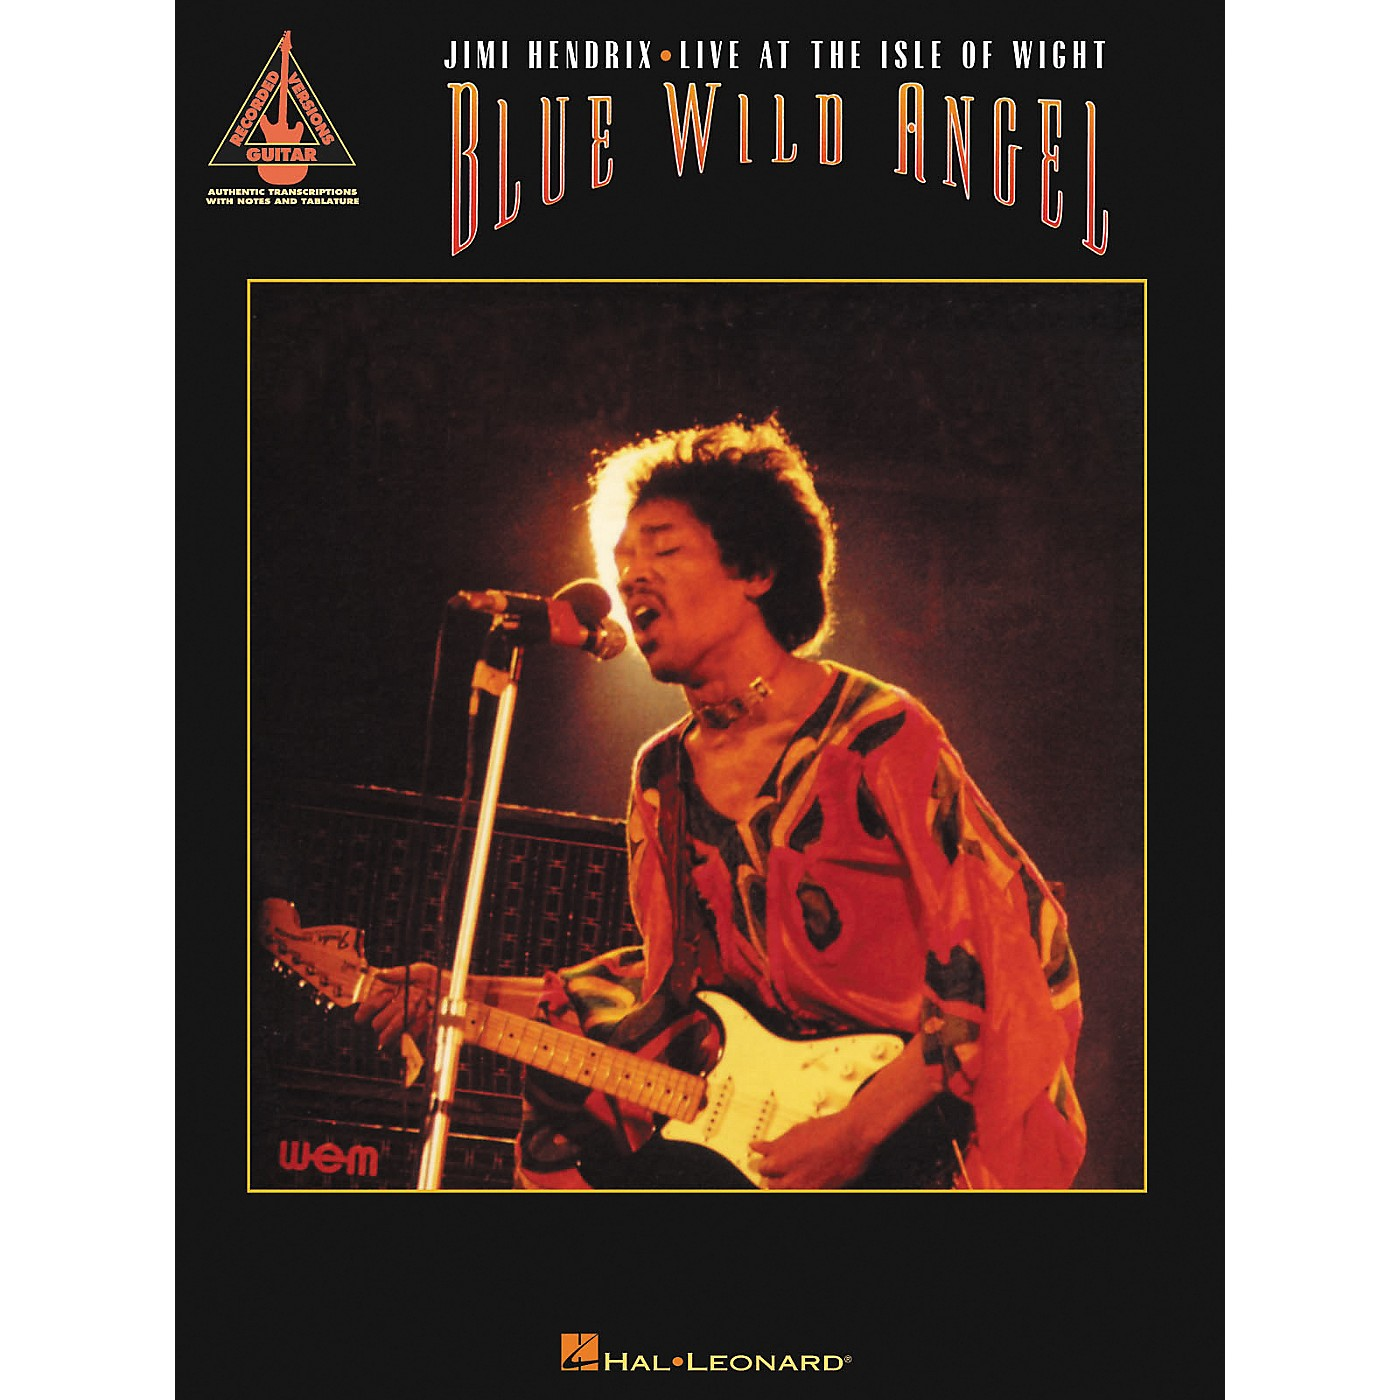 Hal Leonard Blue Wild Angel Jimi Hendrix Live at the Isle of Wight Guitar Tab Songbook thumbnail